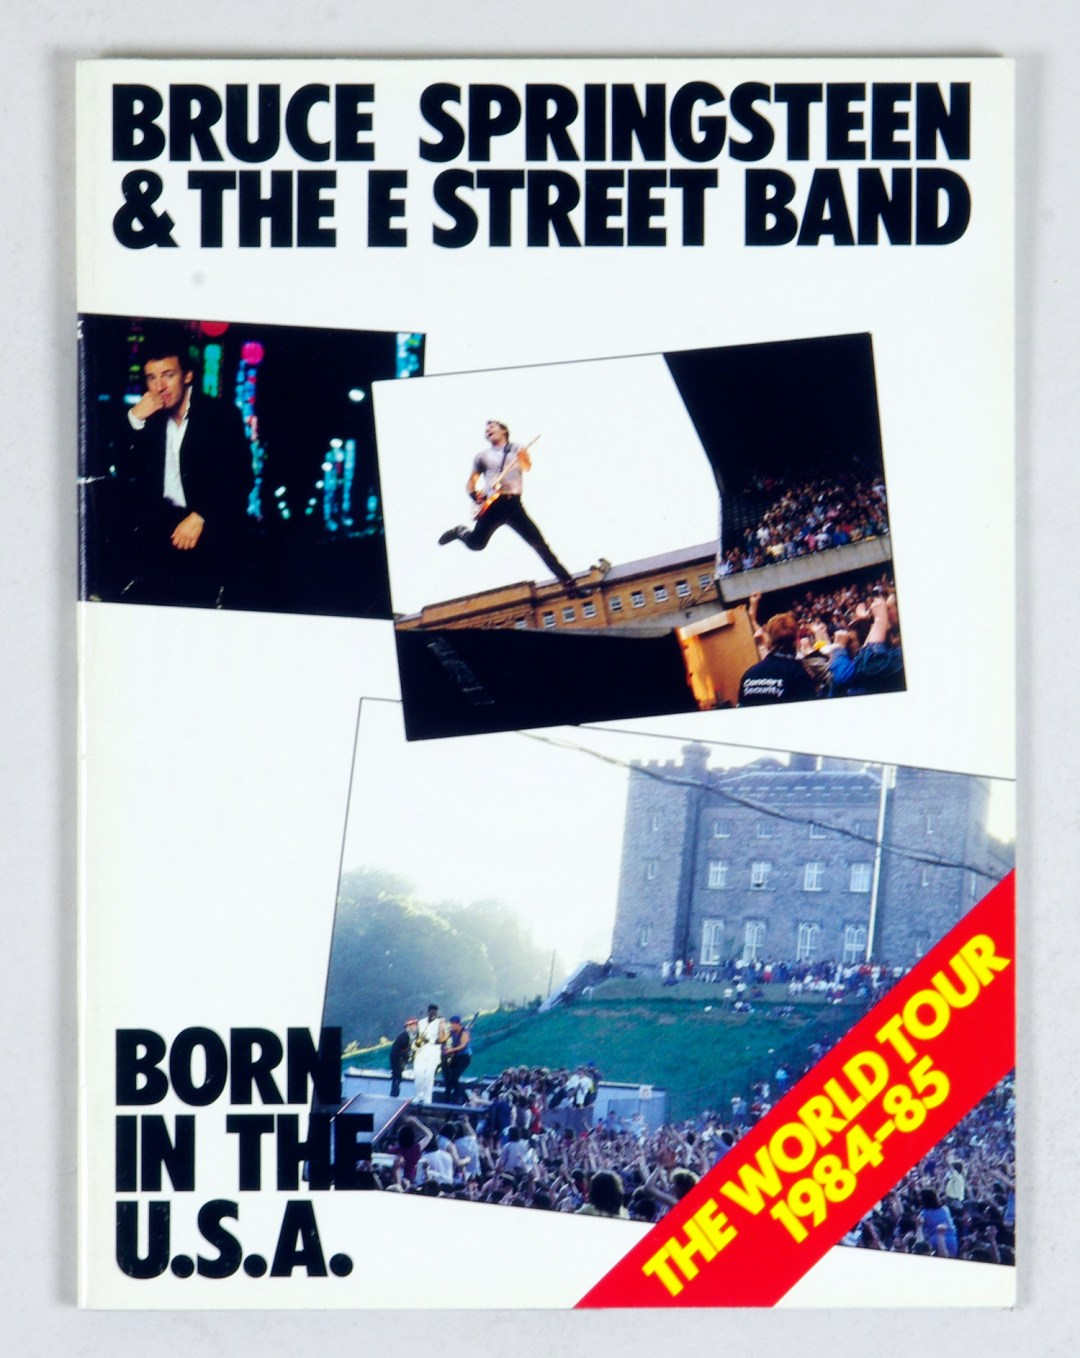 Bruce Springsteen 1984 1985 Born In The USA Tour Program Book 11 x 14